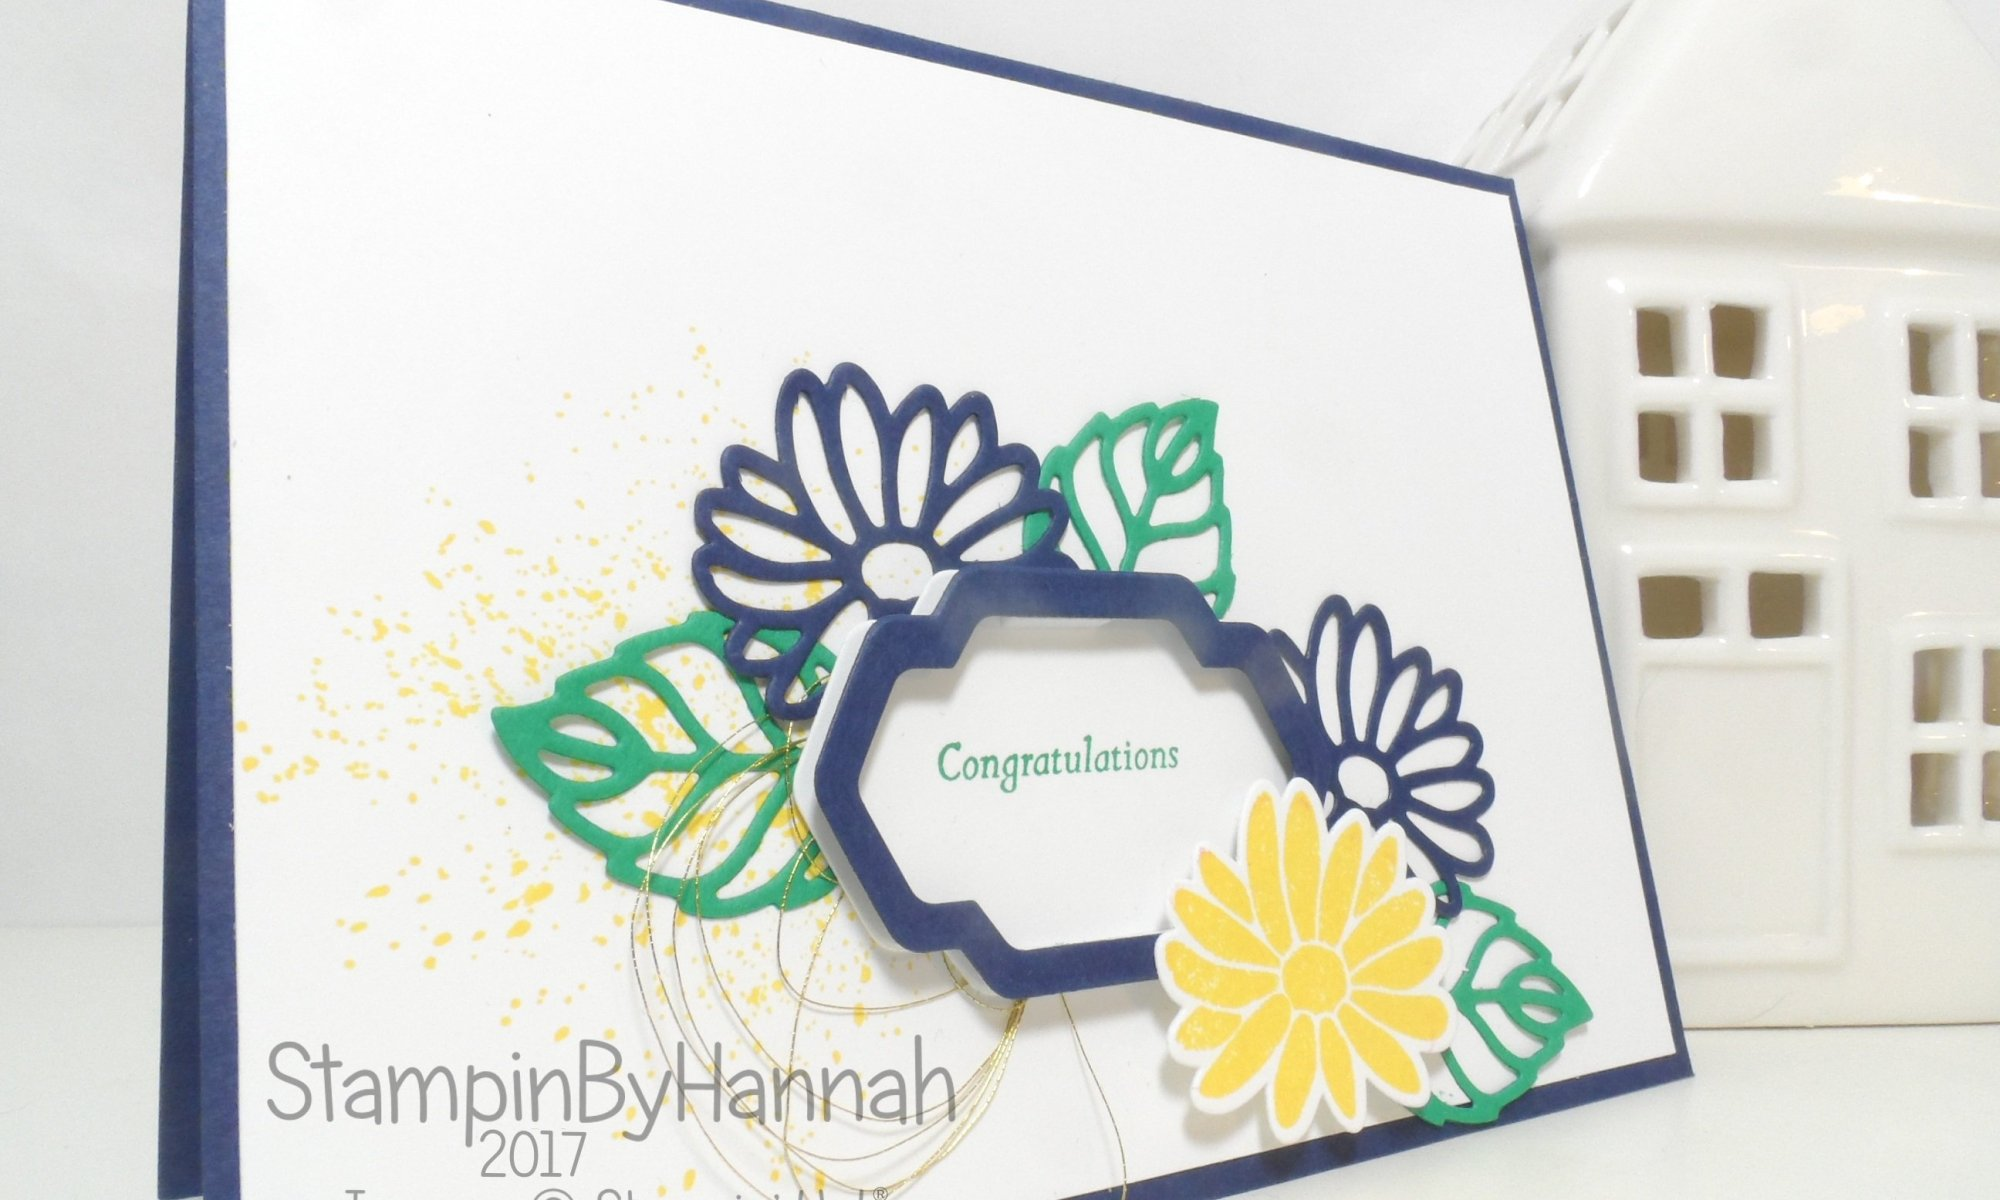 Pootles Papercraft Team Blog Hop project using Special Reason from Stampin' Up! UK